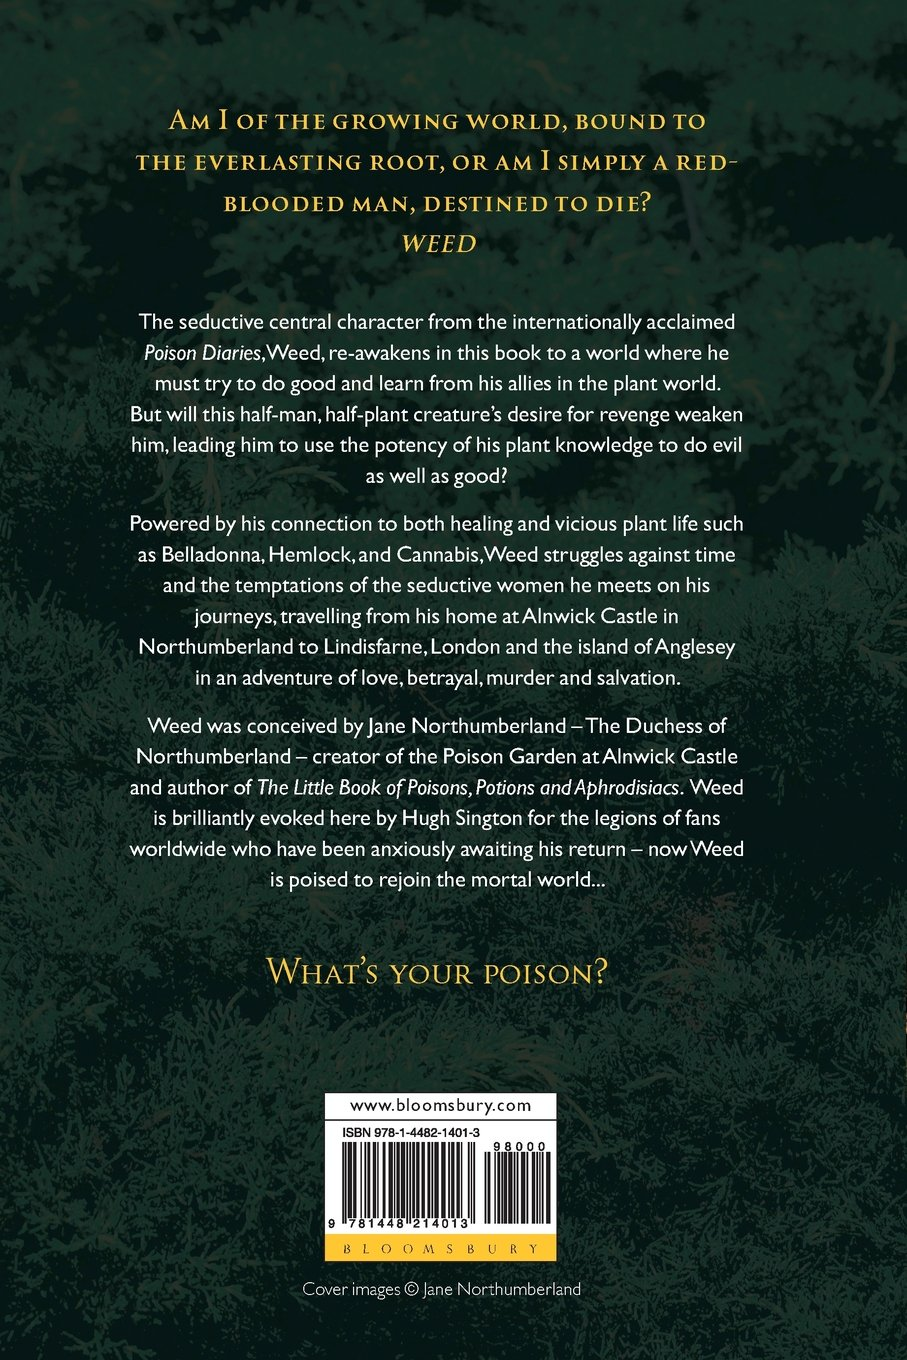 Weed the poison diaries jane northumberland 9781448214013 weed the poison diaries jane northumberland 9781448214013 amazon books fandeluxe Epub